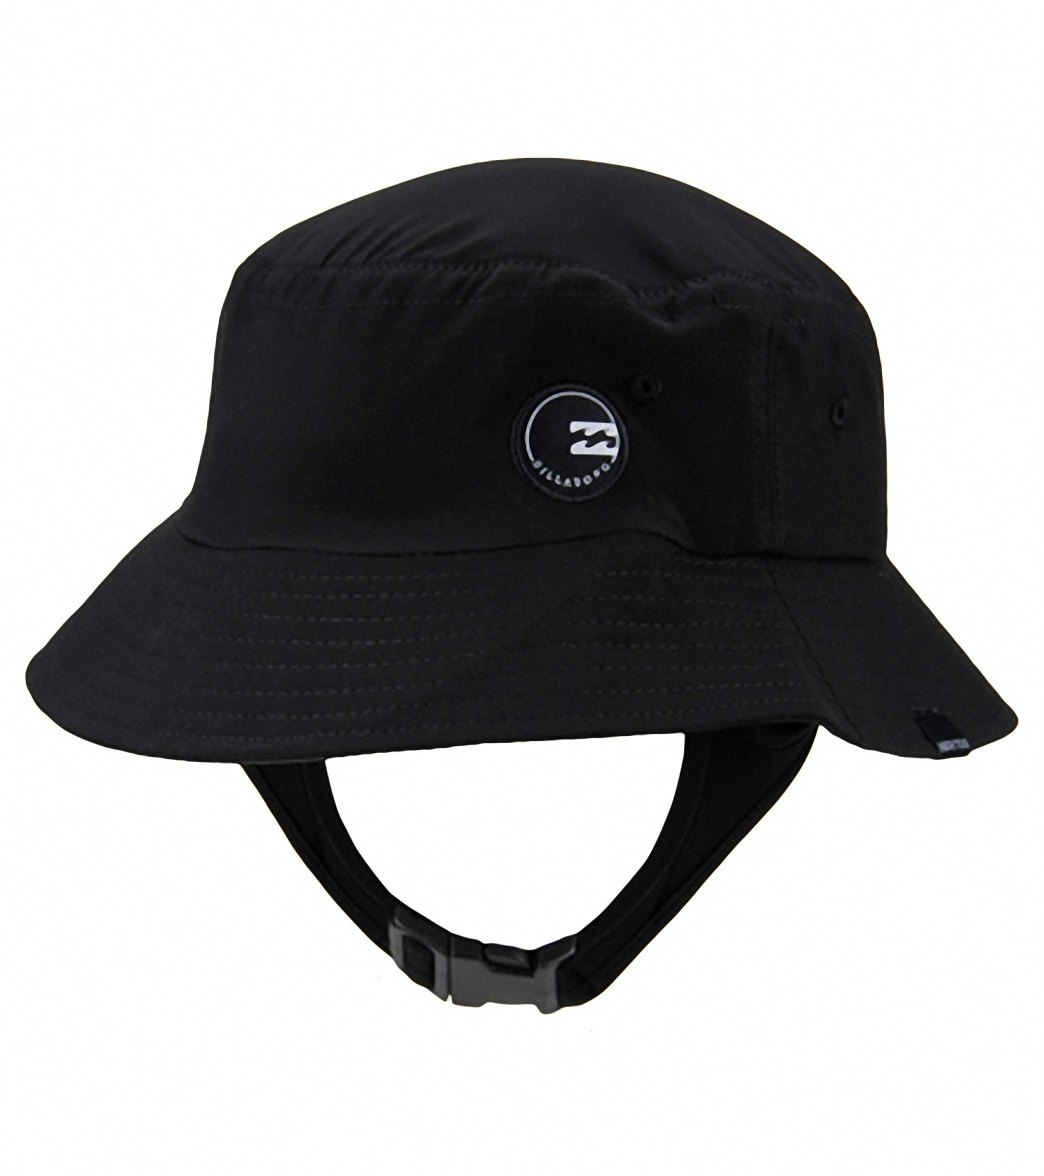 Billabong Men s Supreme Bucket Hat at SwimOutlet.com c5d57df2e82a